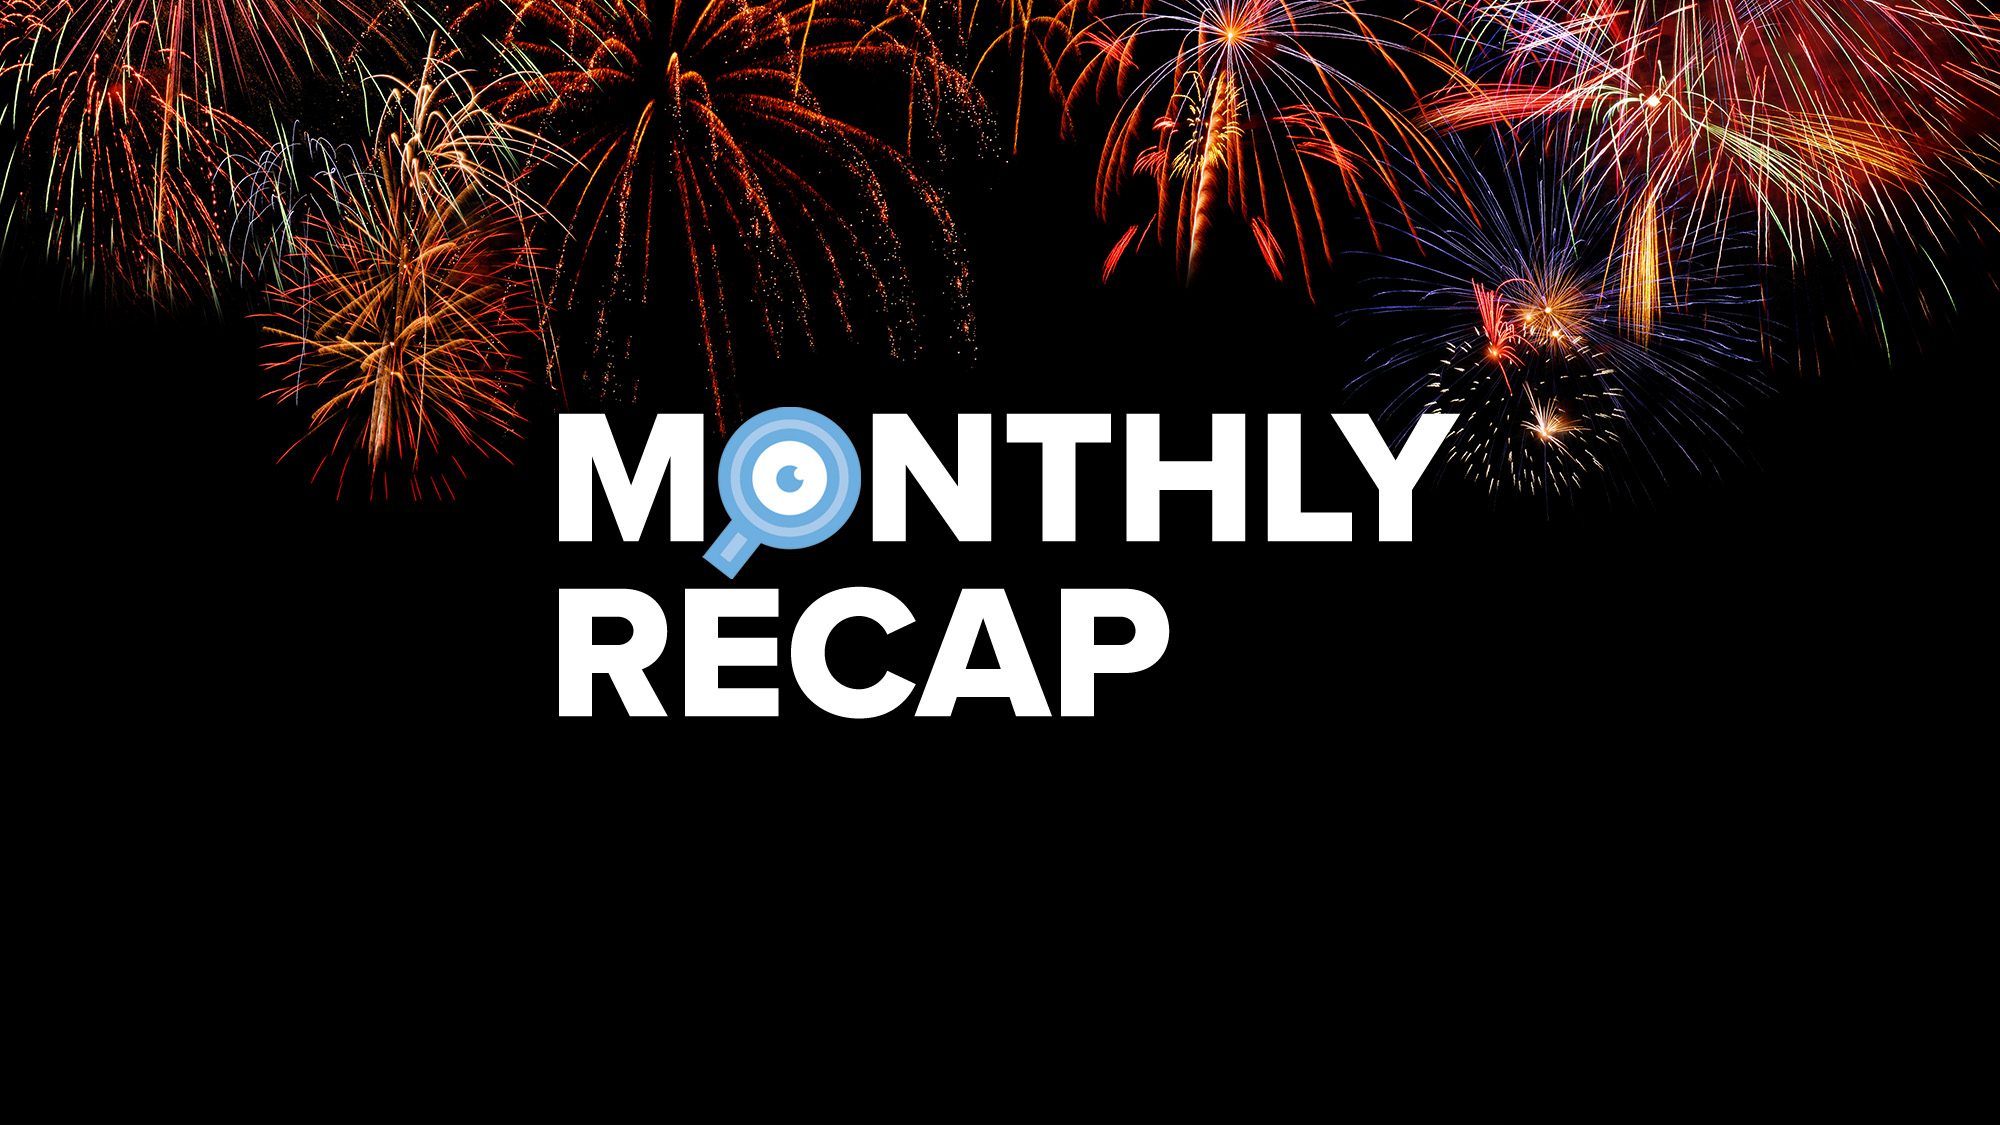 Monthly Recap with fireworks in background